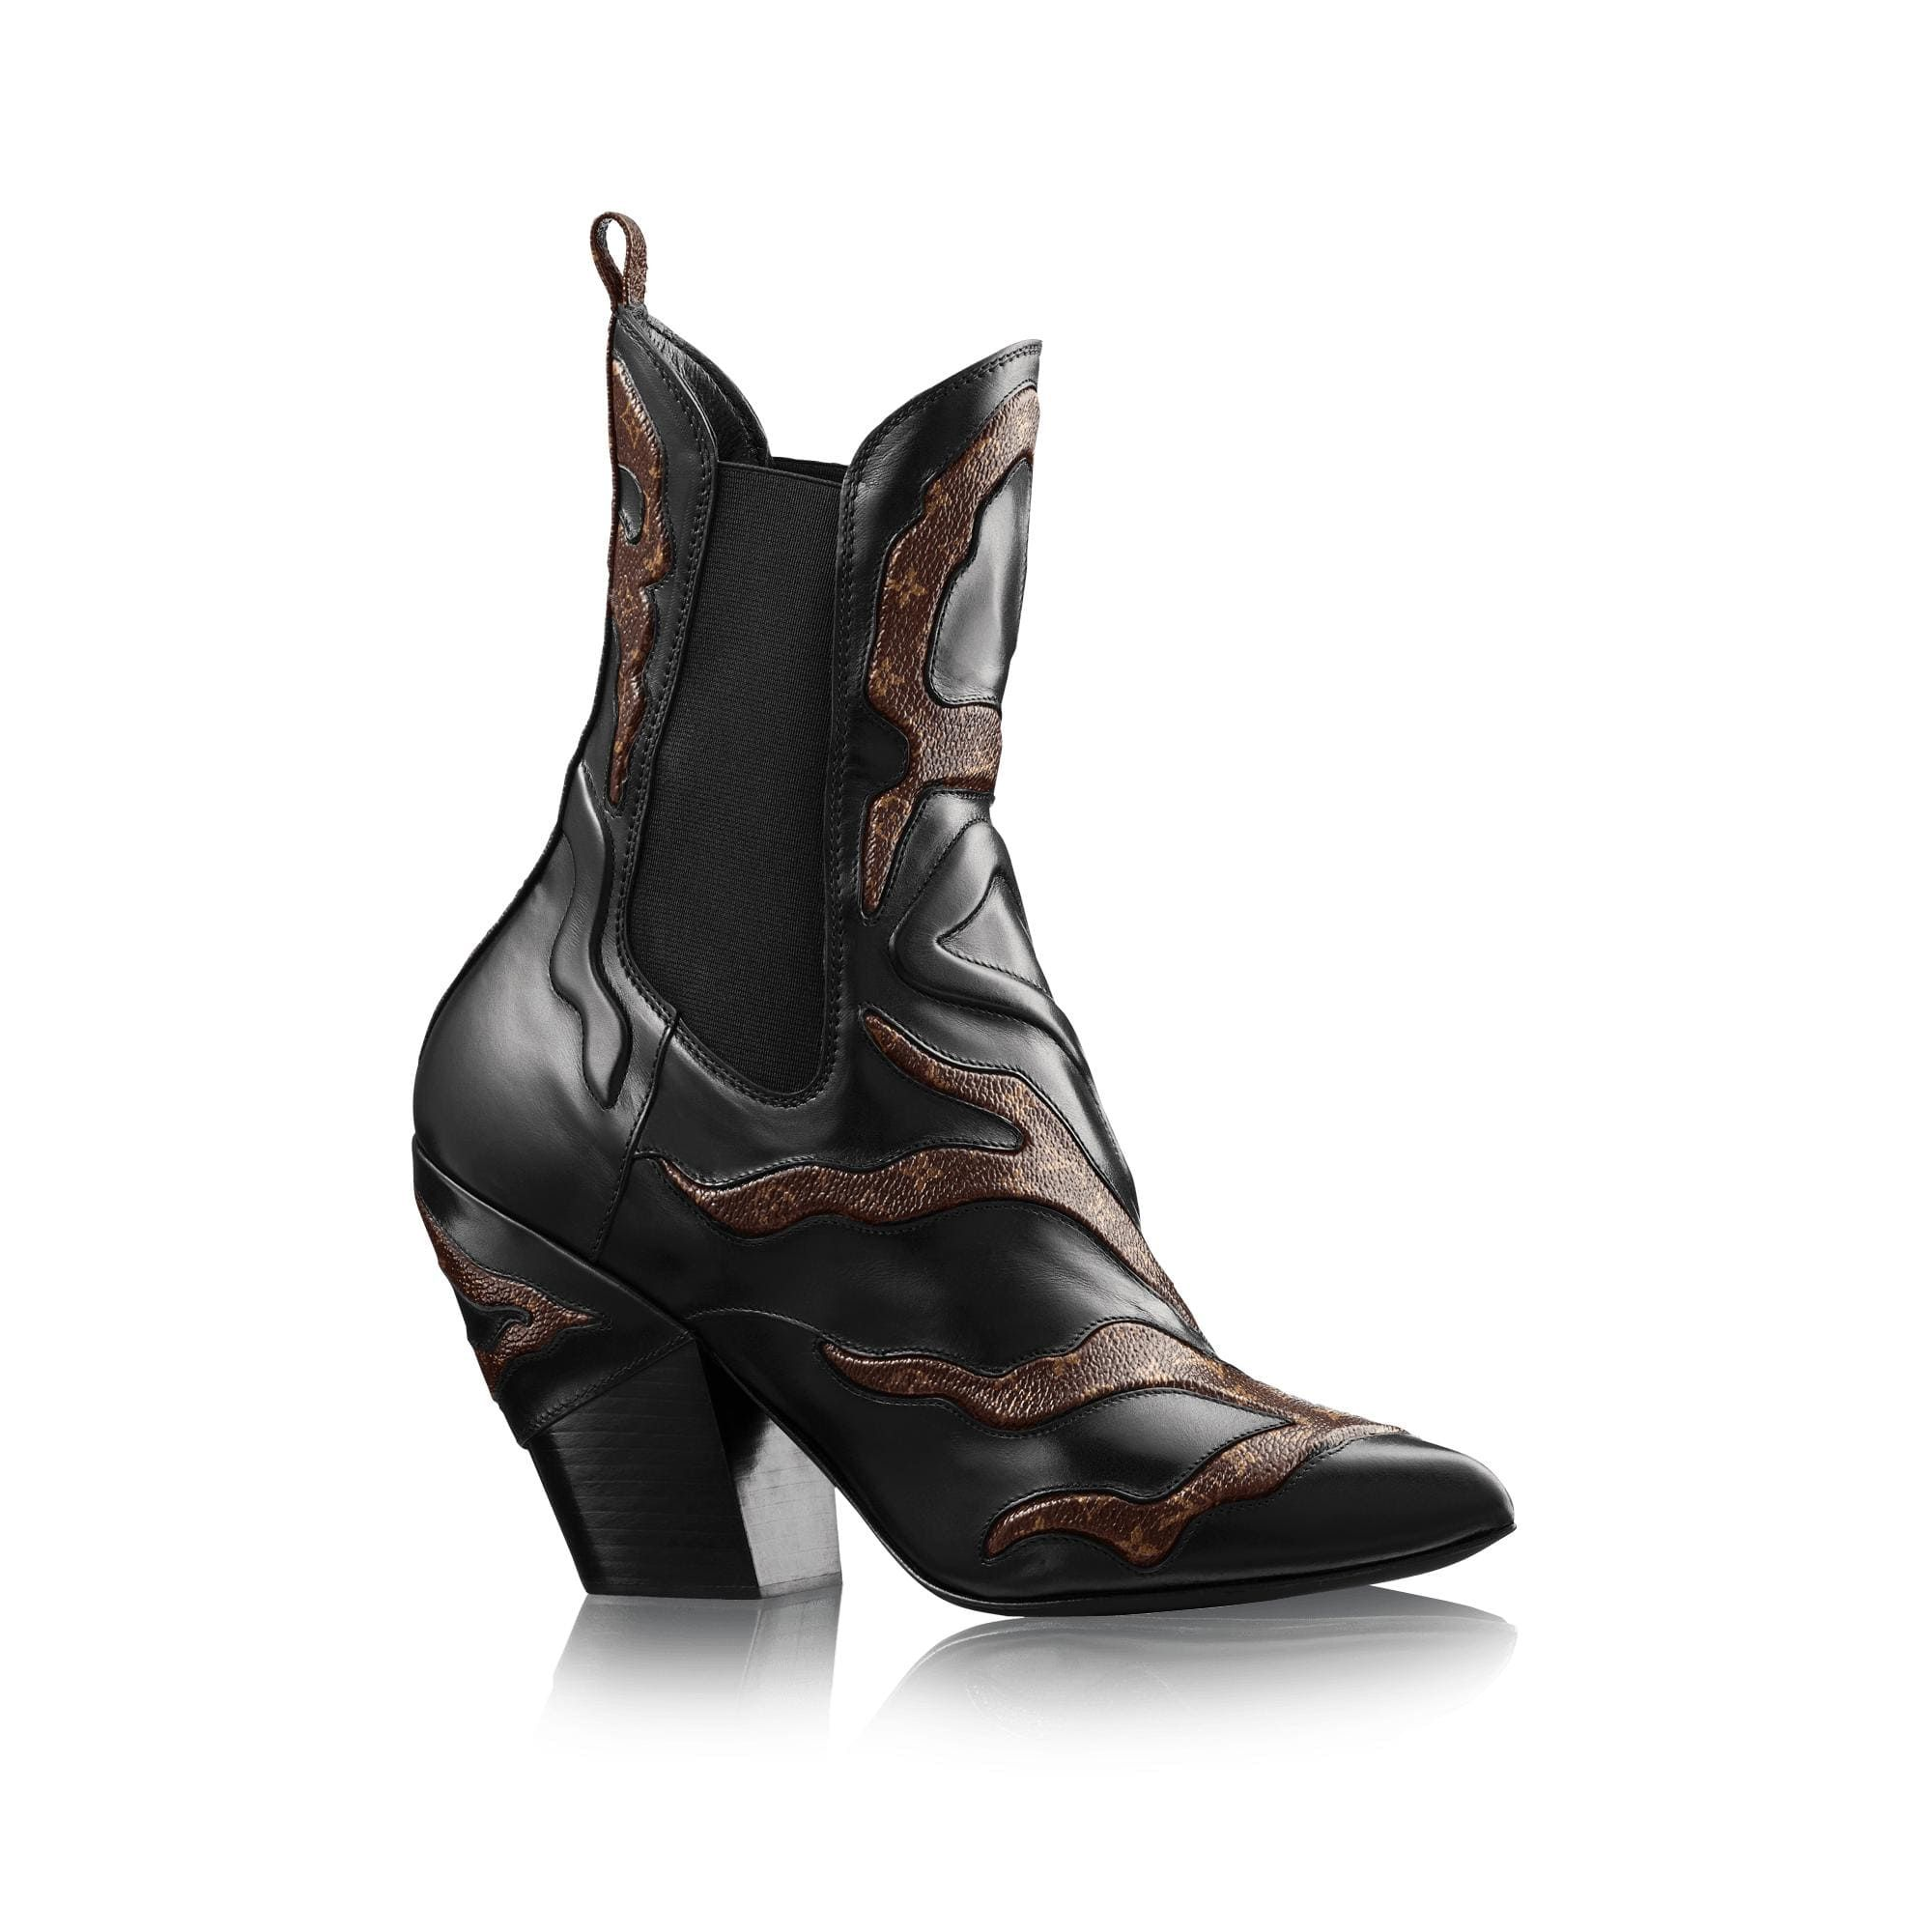 a1f1485138b Fireball Ankle Boot in 2019 | Design Comm. Project 2- Cowboy Boots ...